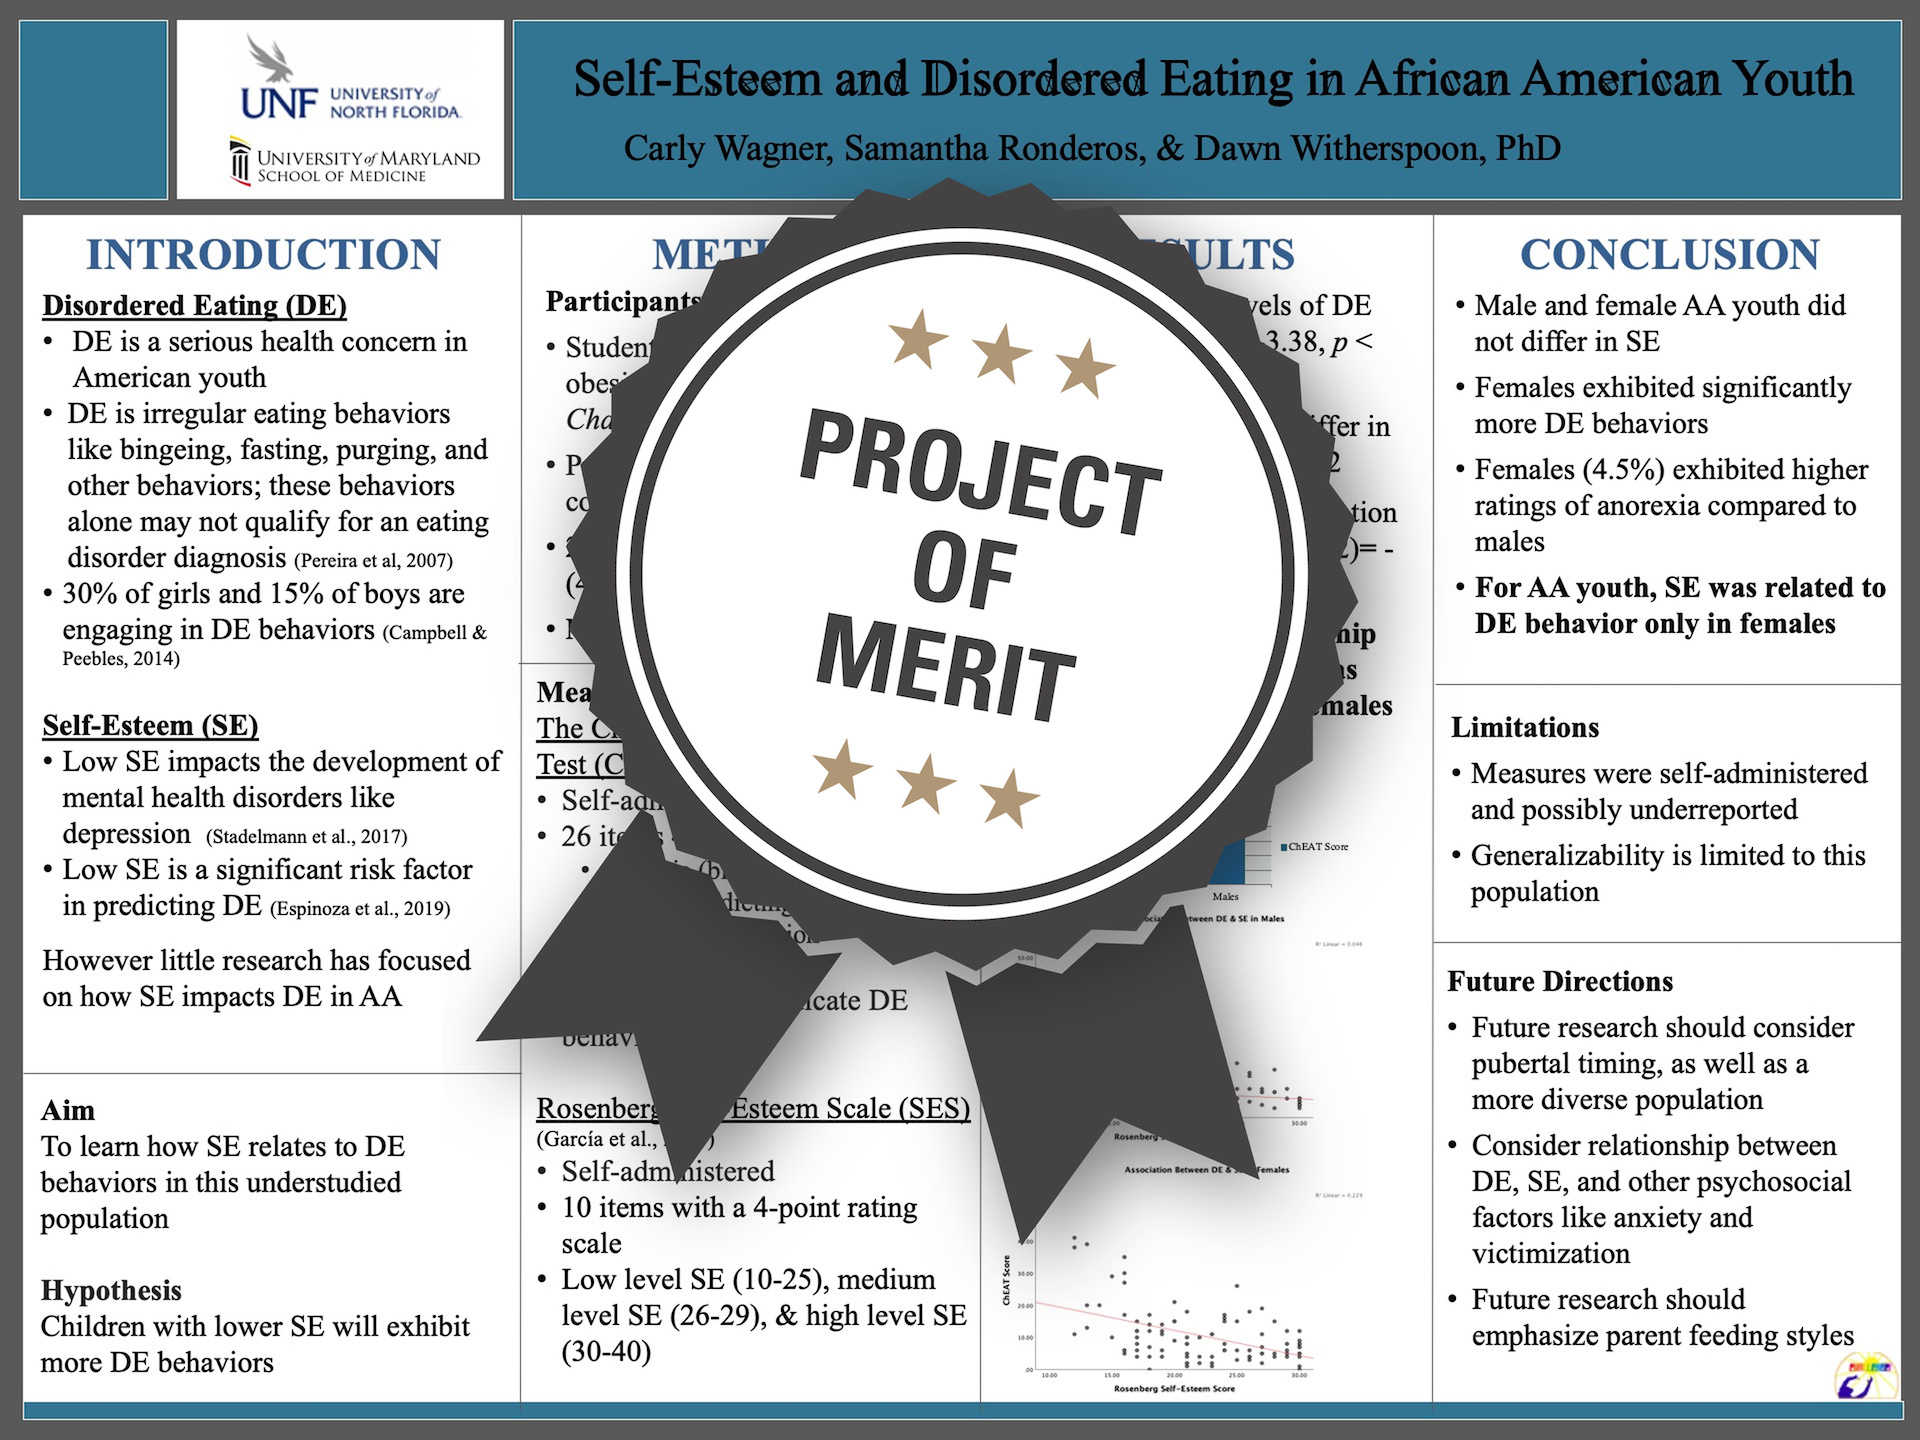 Self-Esteem and Disordered Eating in African American Youth Project of Merit poster